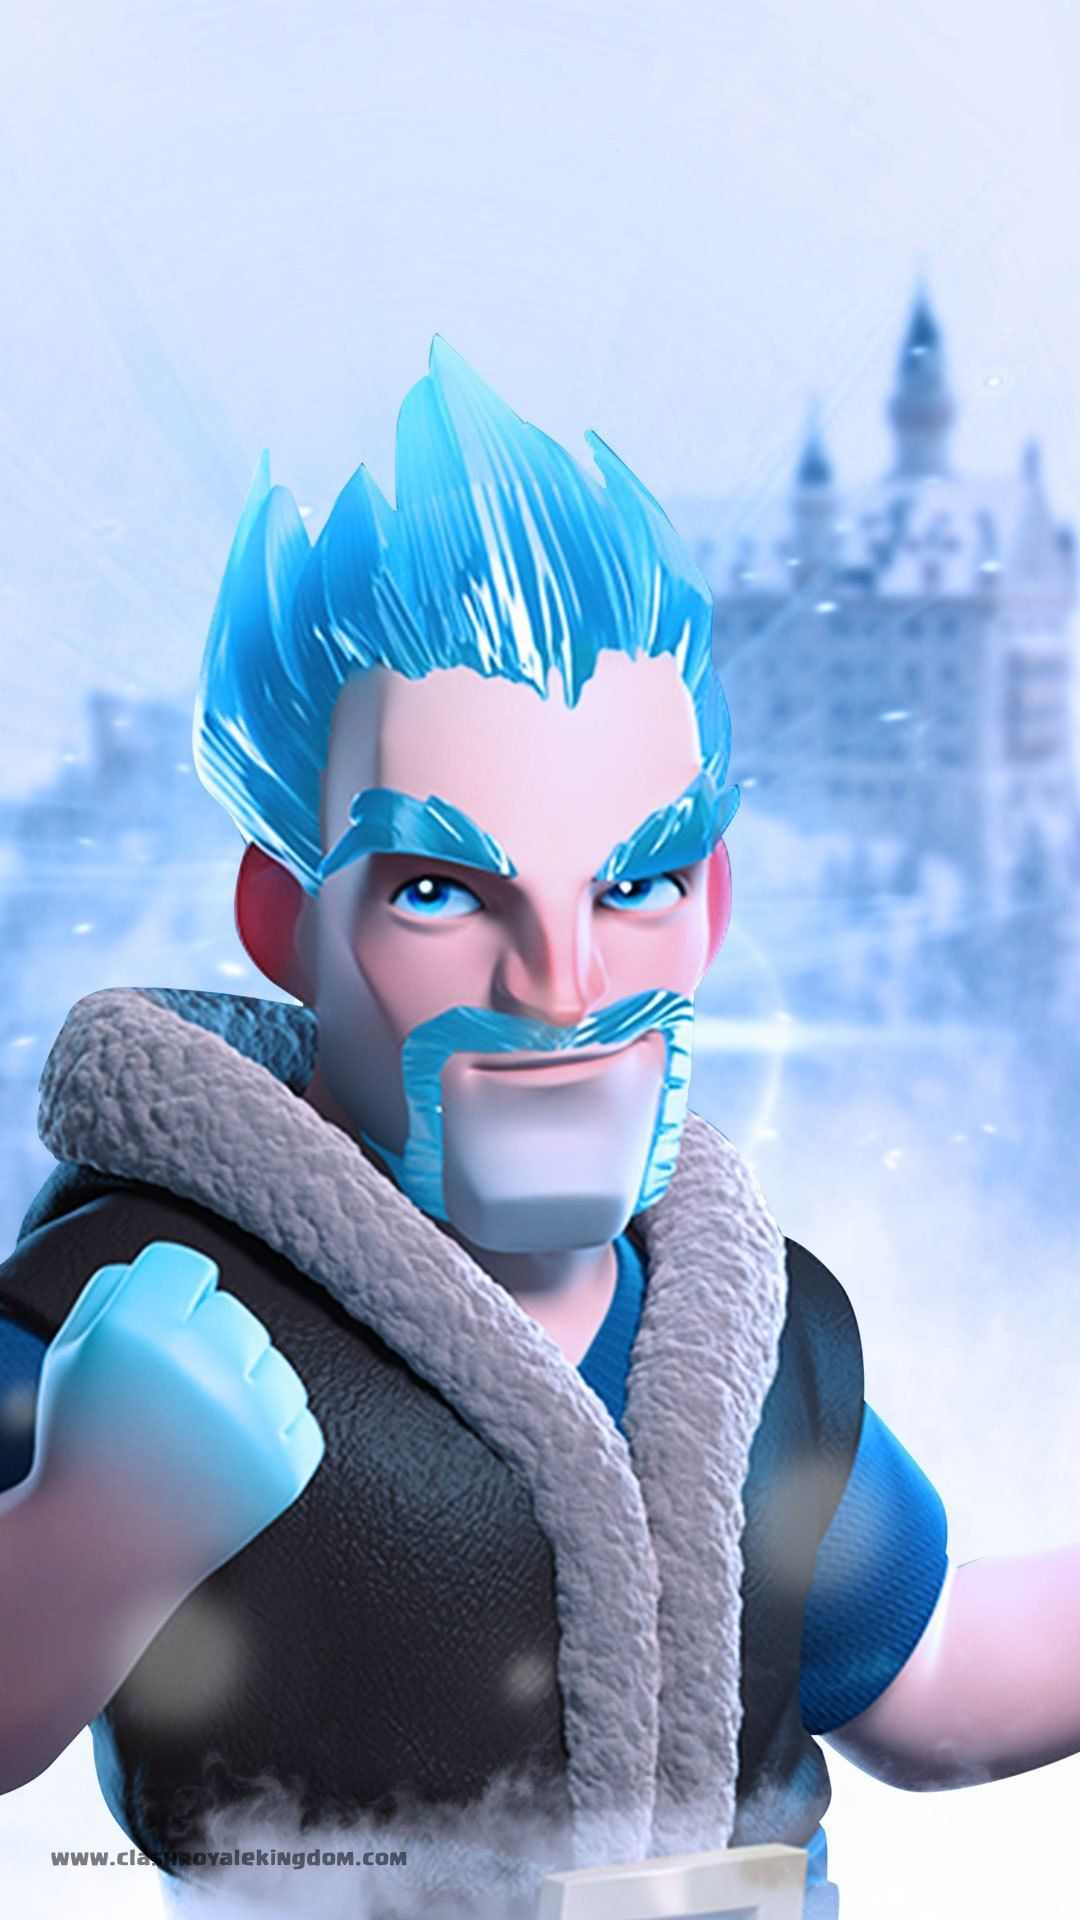 Ice King Wallpaper Download High Quality Clash Royale Wallpaper Now Get It For Free Clash Royale Cards Clash Royale Wallpaper Clash Royale Party